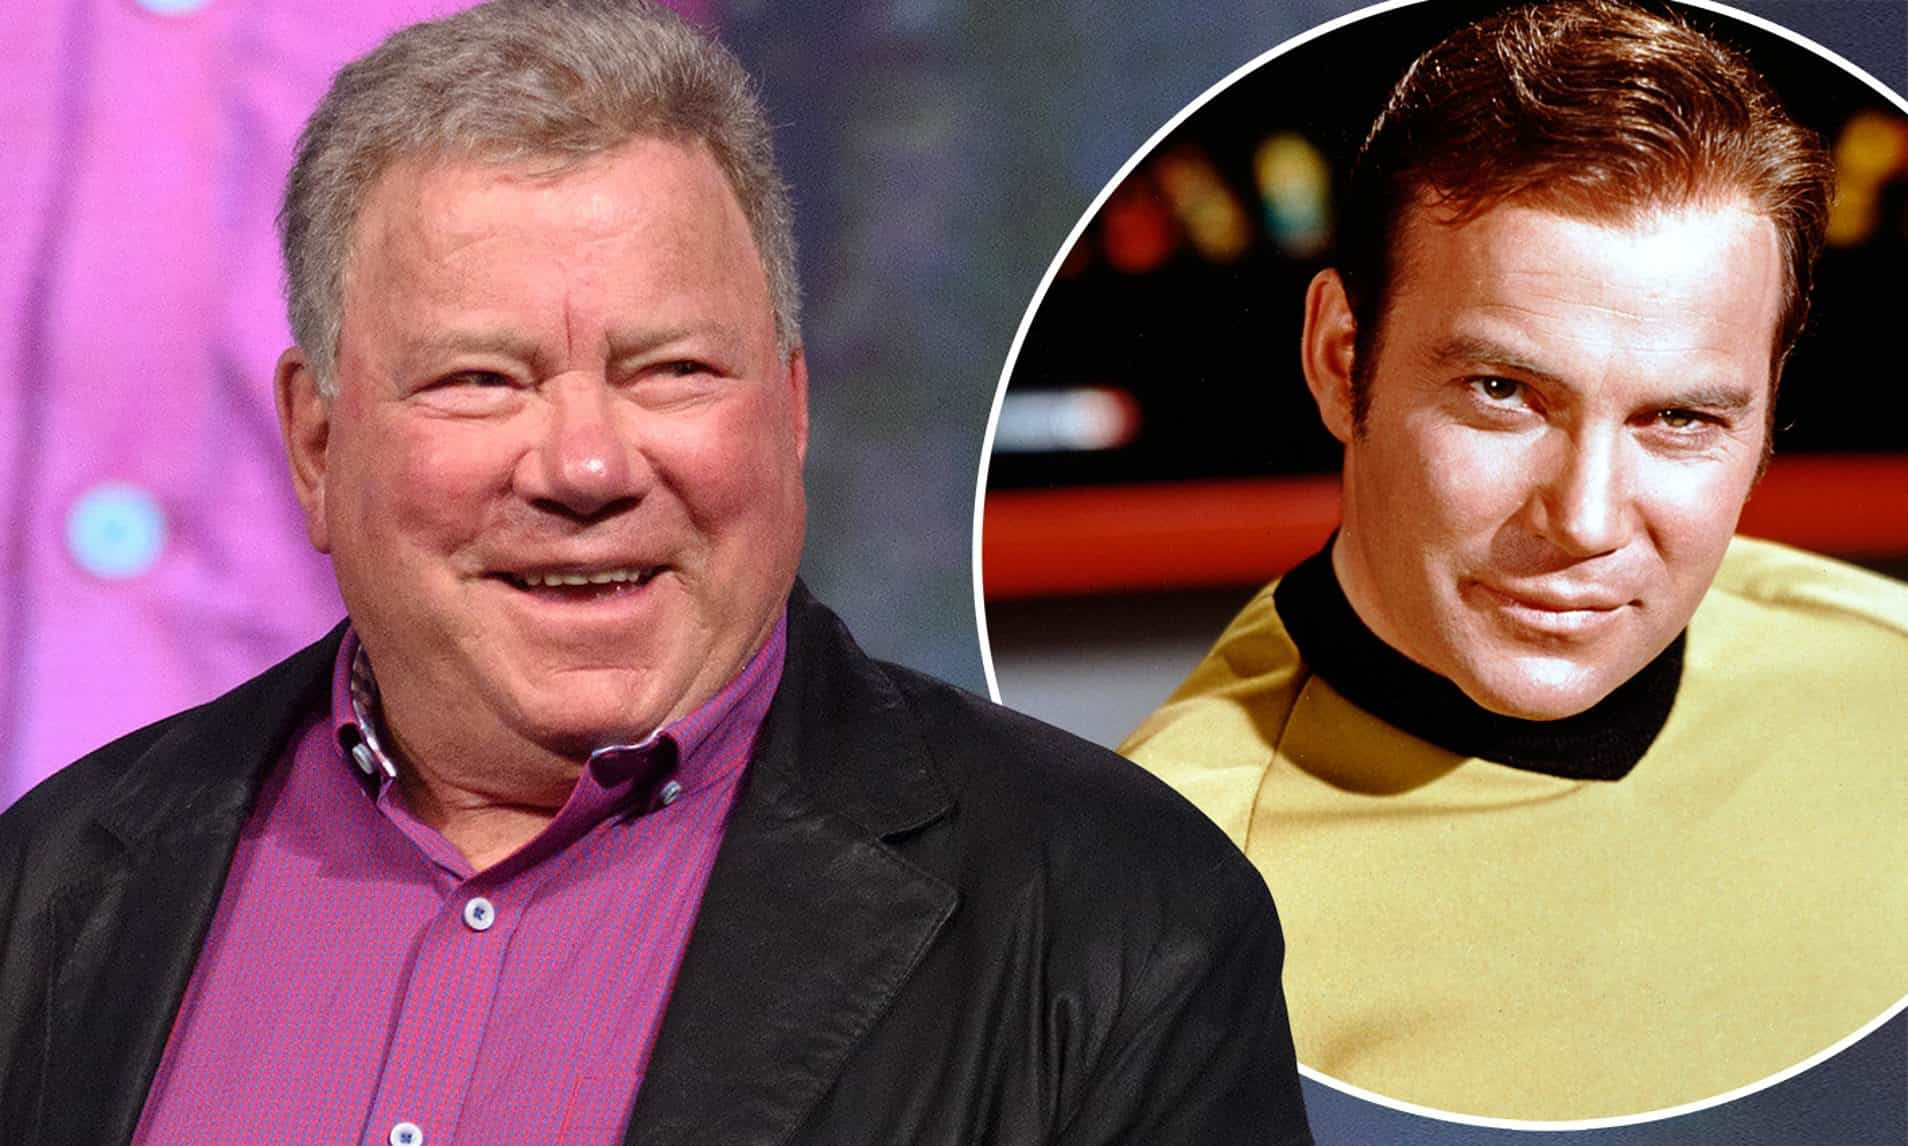 William Shatner (and his role as Captain Kirk). Source: Daily Mail